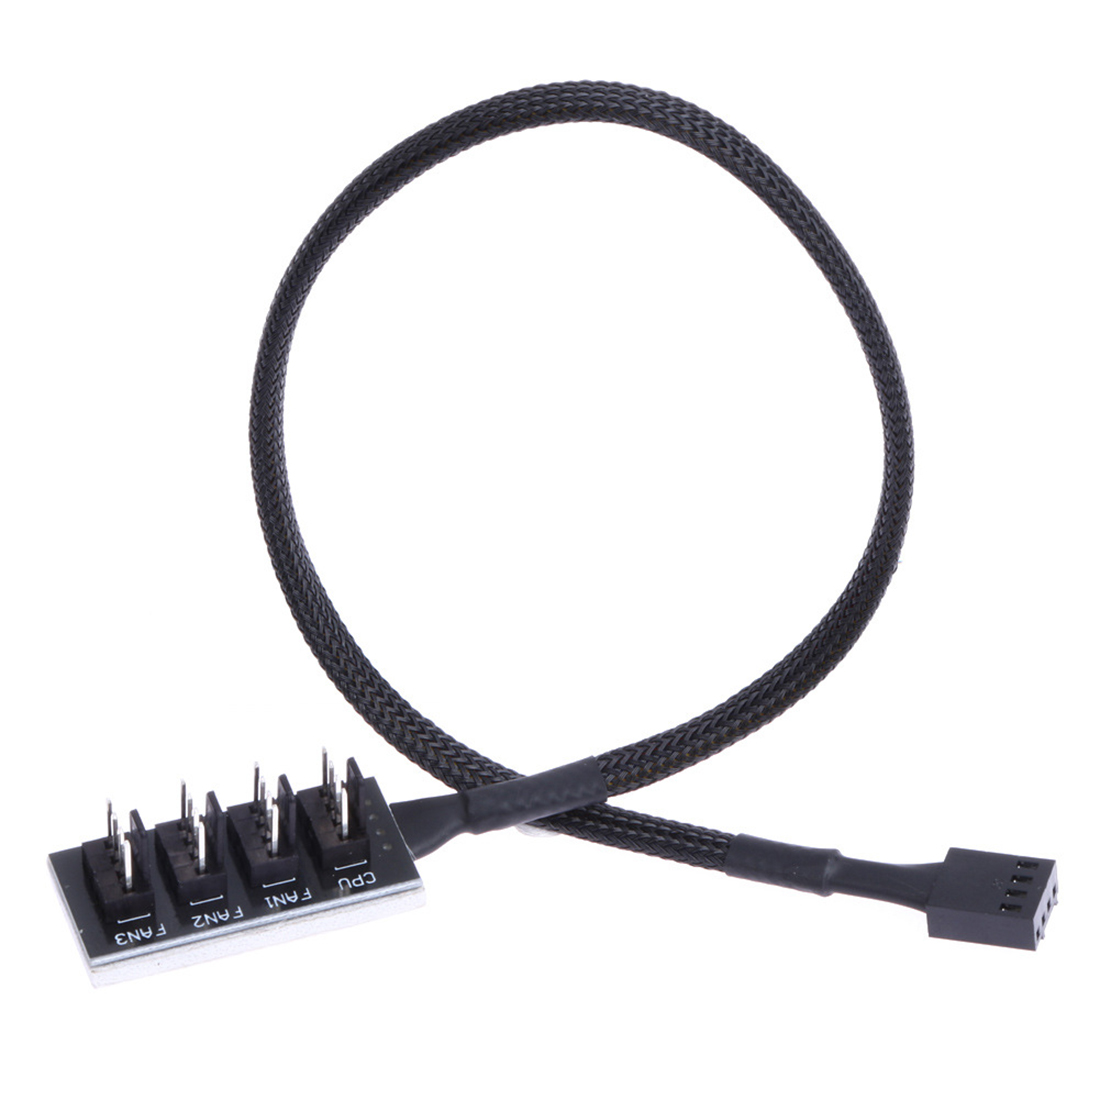 Braided Power Cable 1 to 5 / 4 Pins TX4 PWM <font><b>CPU</b></font> Cooler Computer Chasis Cooling Fan Hub Splitter <font><b>Adapter</b></font> Wire 35cm for PC image